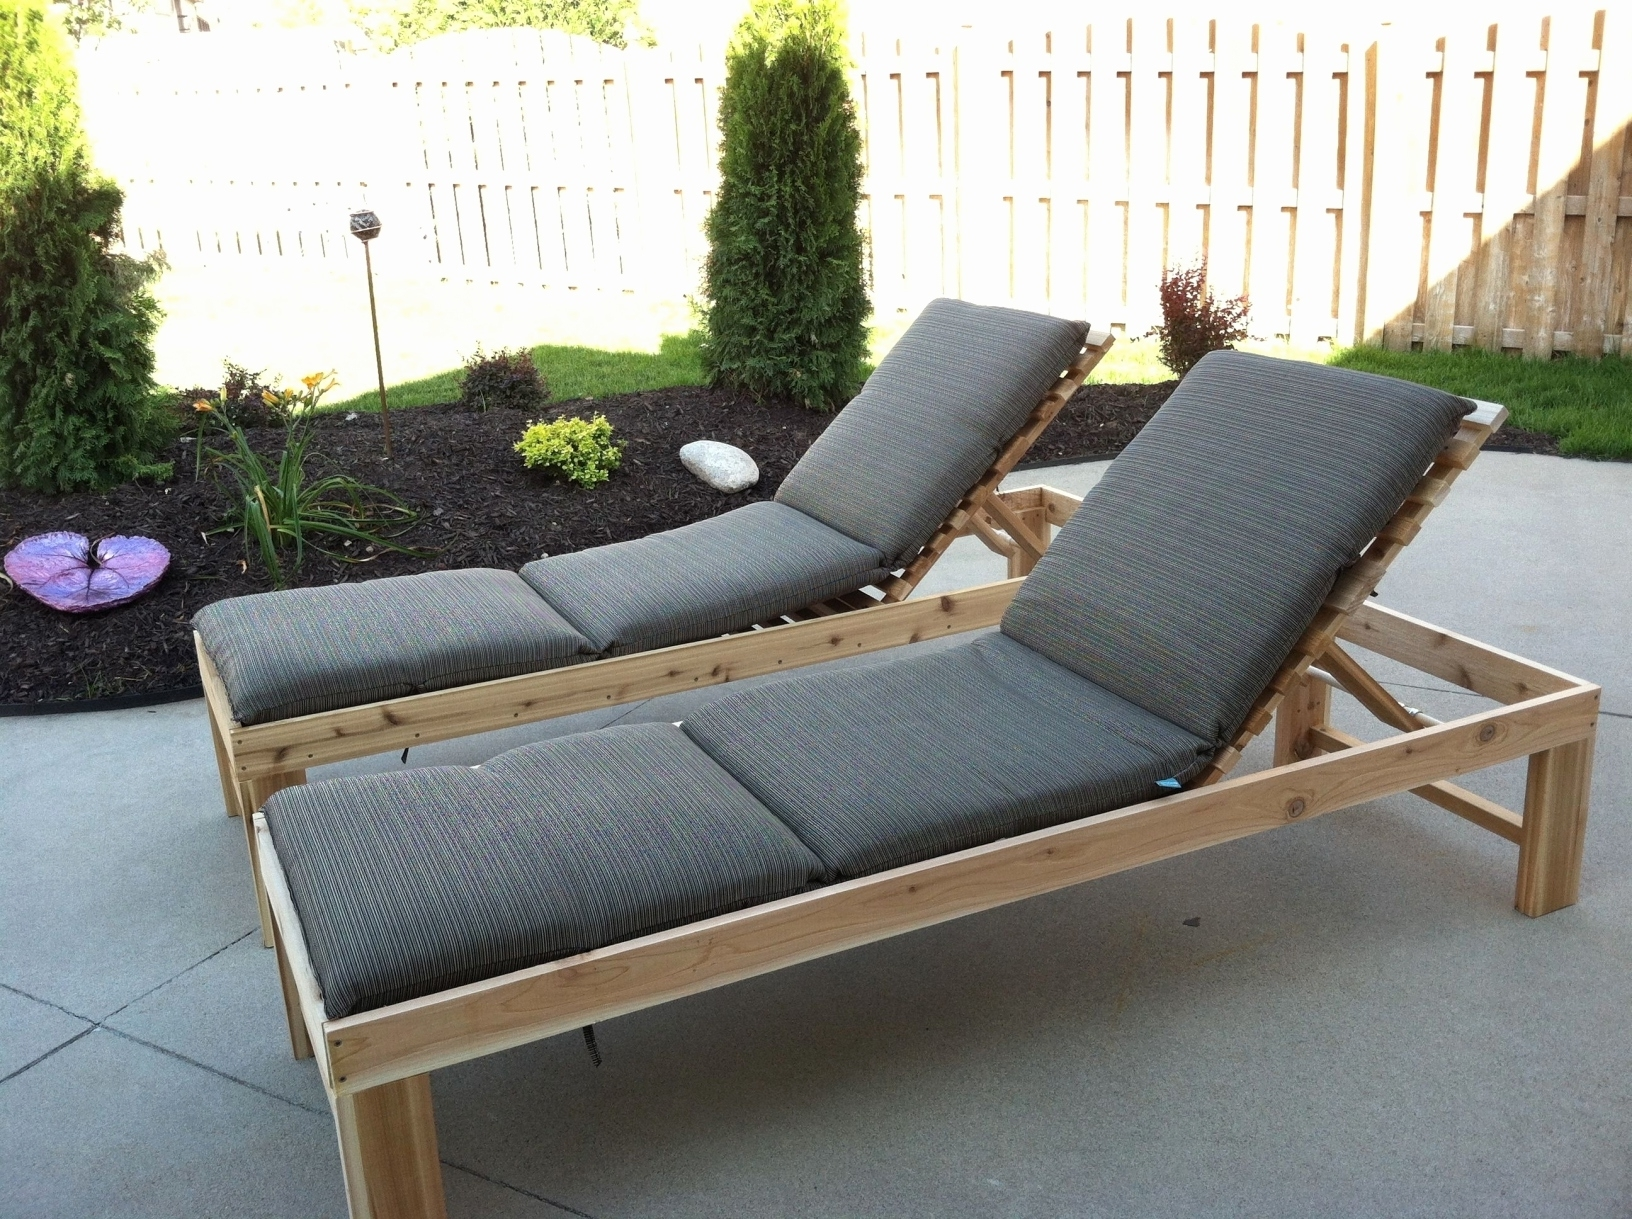 Most Popular Beach Chaise Lounge Chairs Amazing Diy Chaise Lounge Diy Outdoor Intended For Diy Outdoor Chaise Lounge Chairs (View 3 of 15)